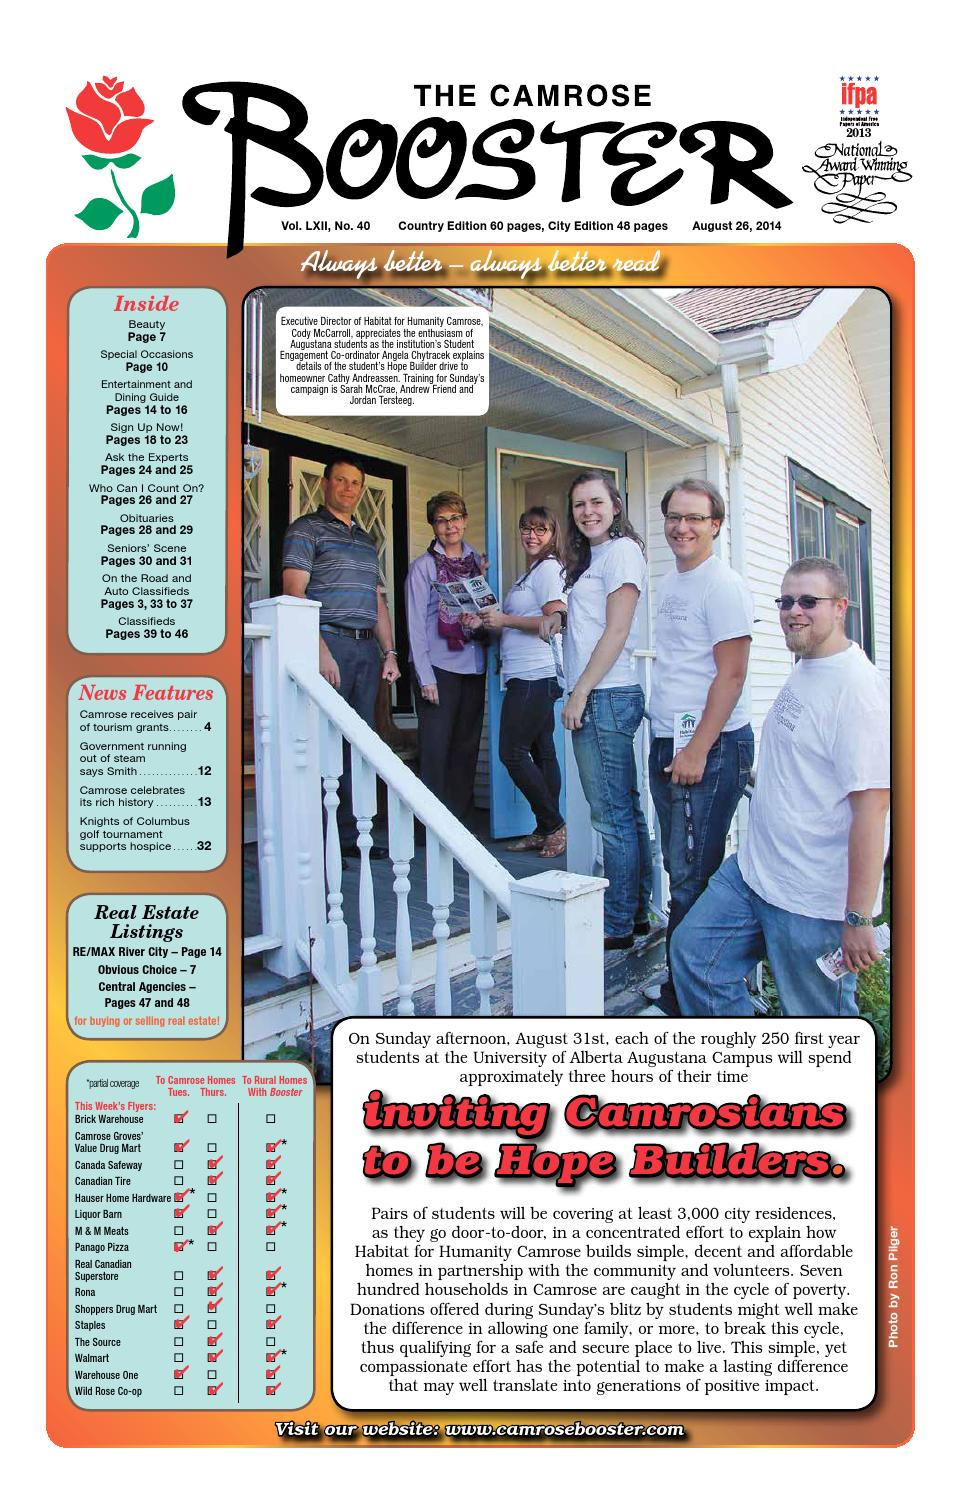 August 26, 2014 Camrose Booster by The Camrose Booster - issuu